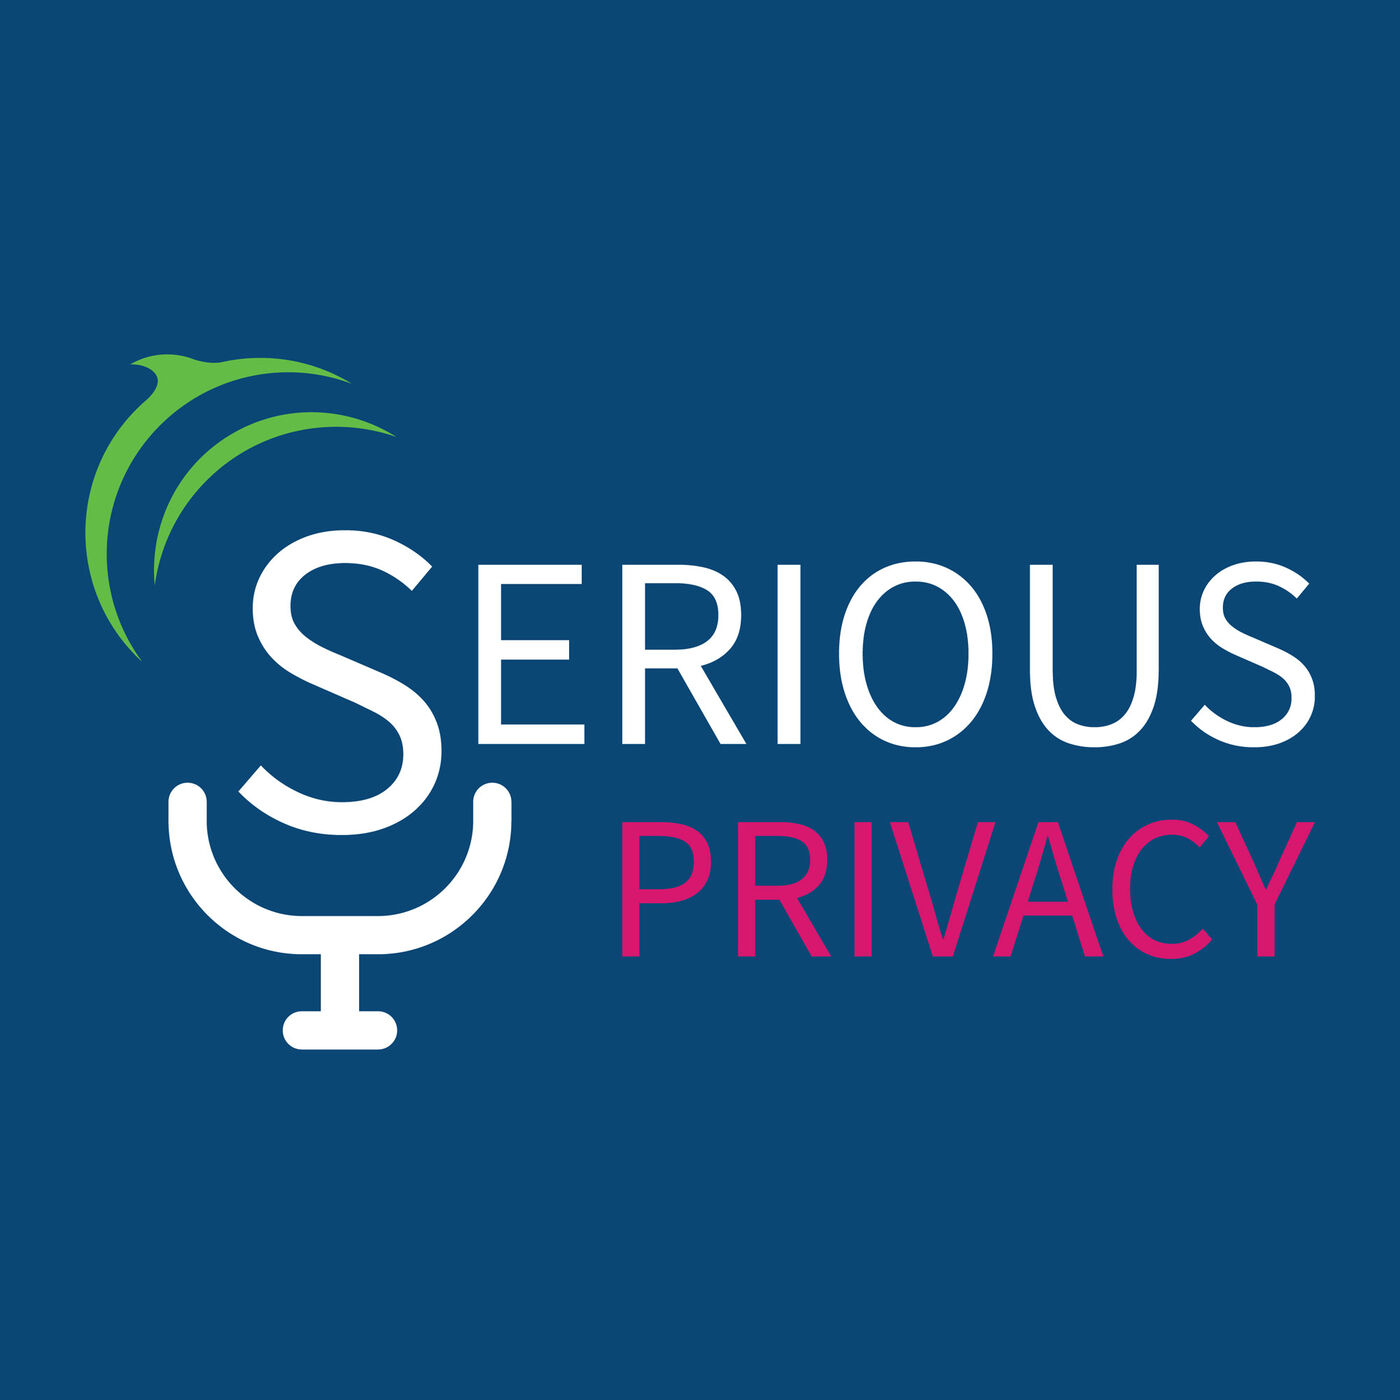 Wicked Privacy: A Frank Discussion on Thorny Topics (with Michelle Dennedy, Ruby Zefo, and Hilary Wandall)